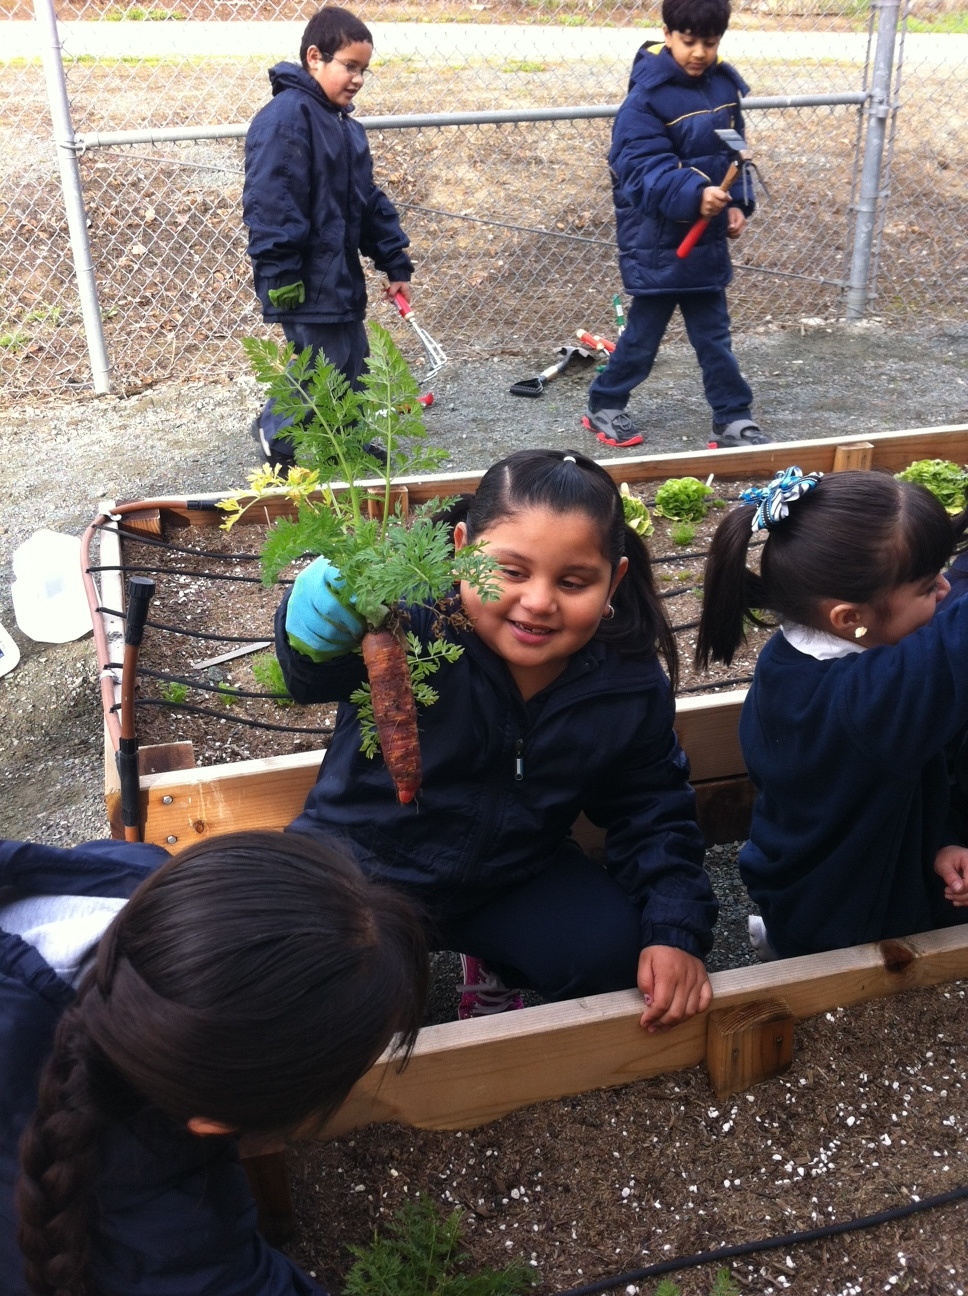 Harvesting Carrots at Willow Cove Elementary School (Pittsburg, CA)